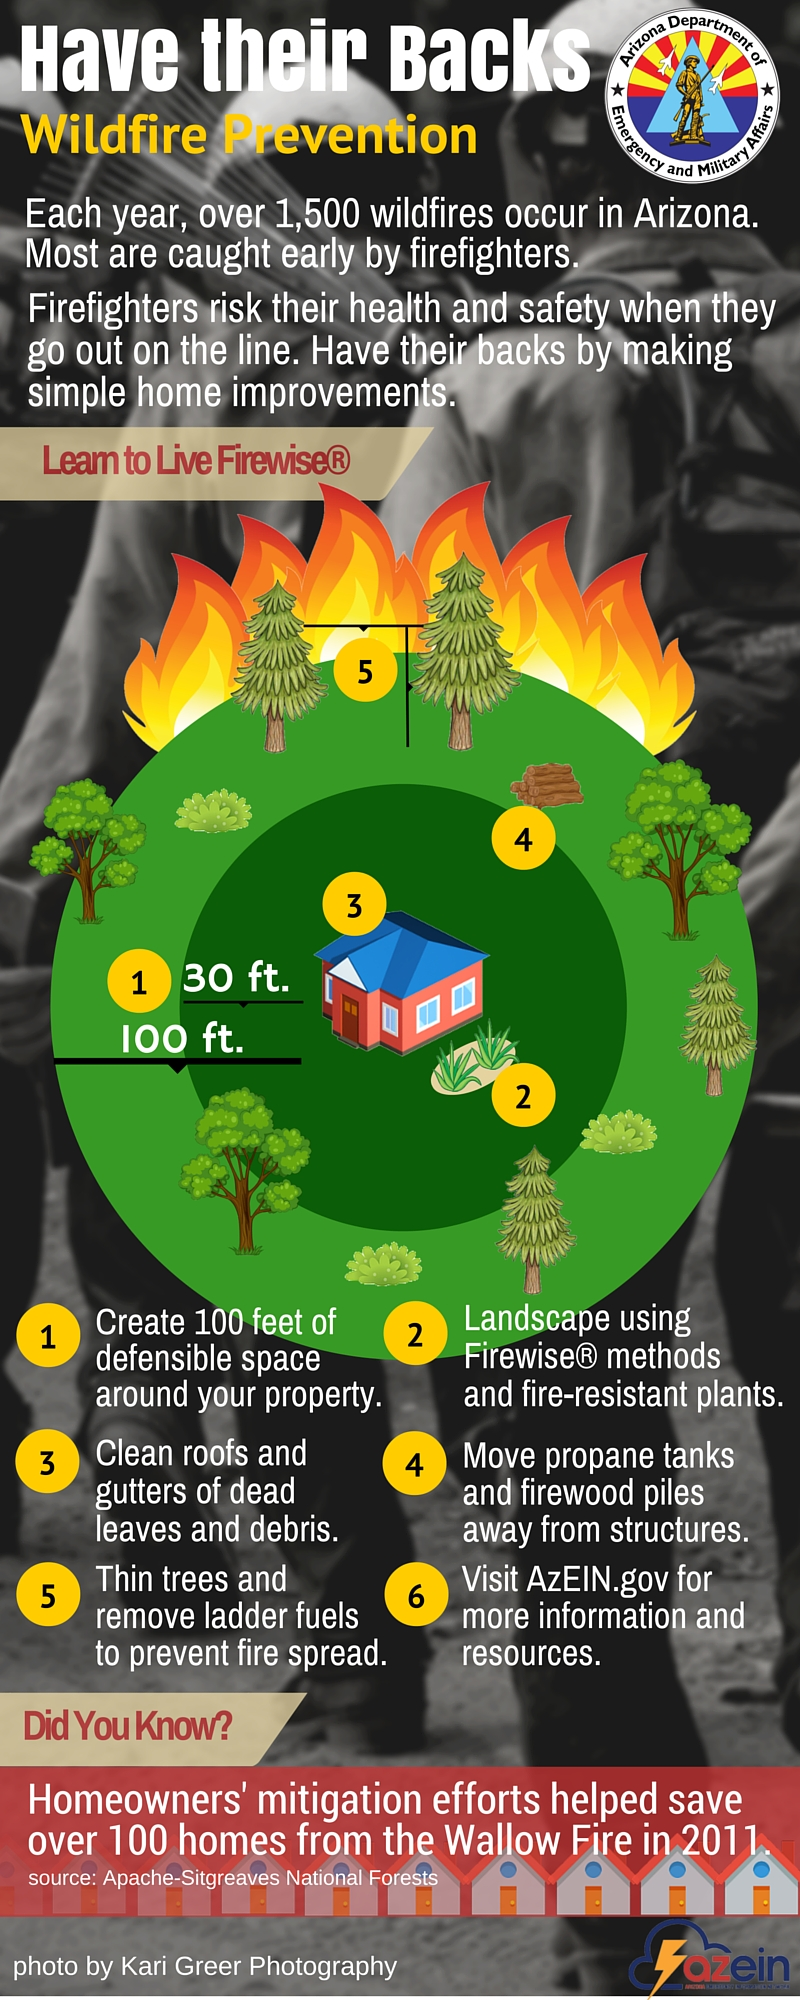 Infographic depicting what people can do to reduce the impact of wildfire on homes and businesses.